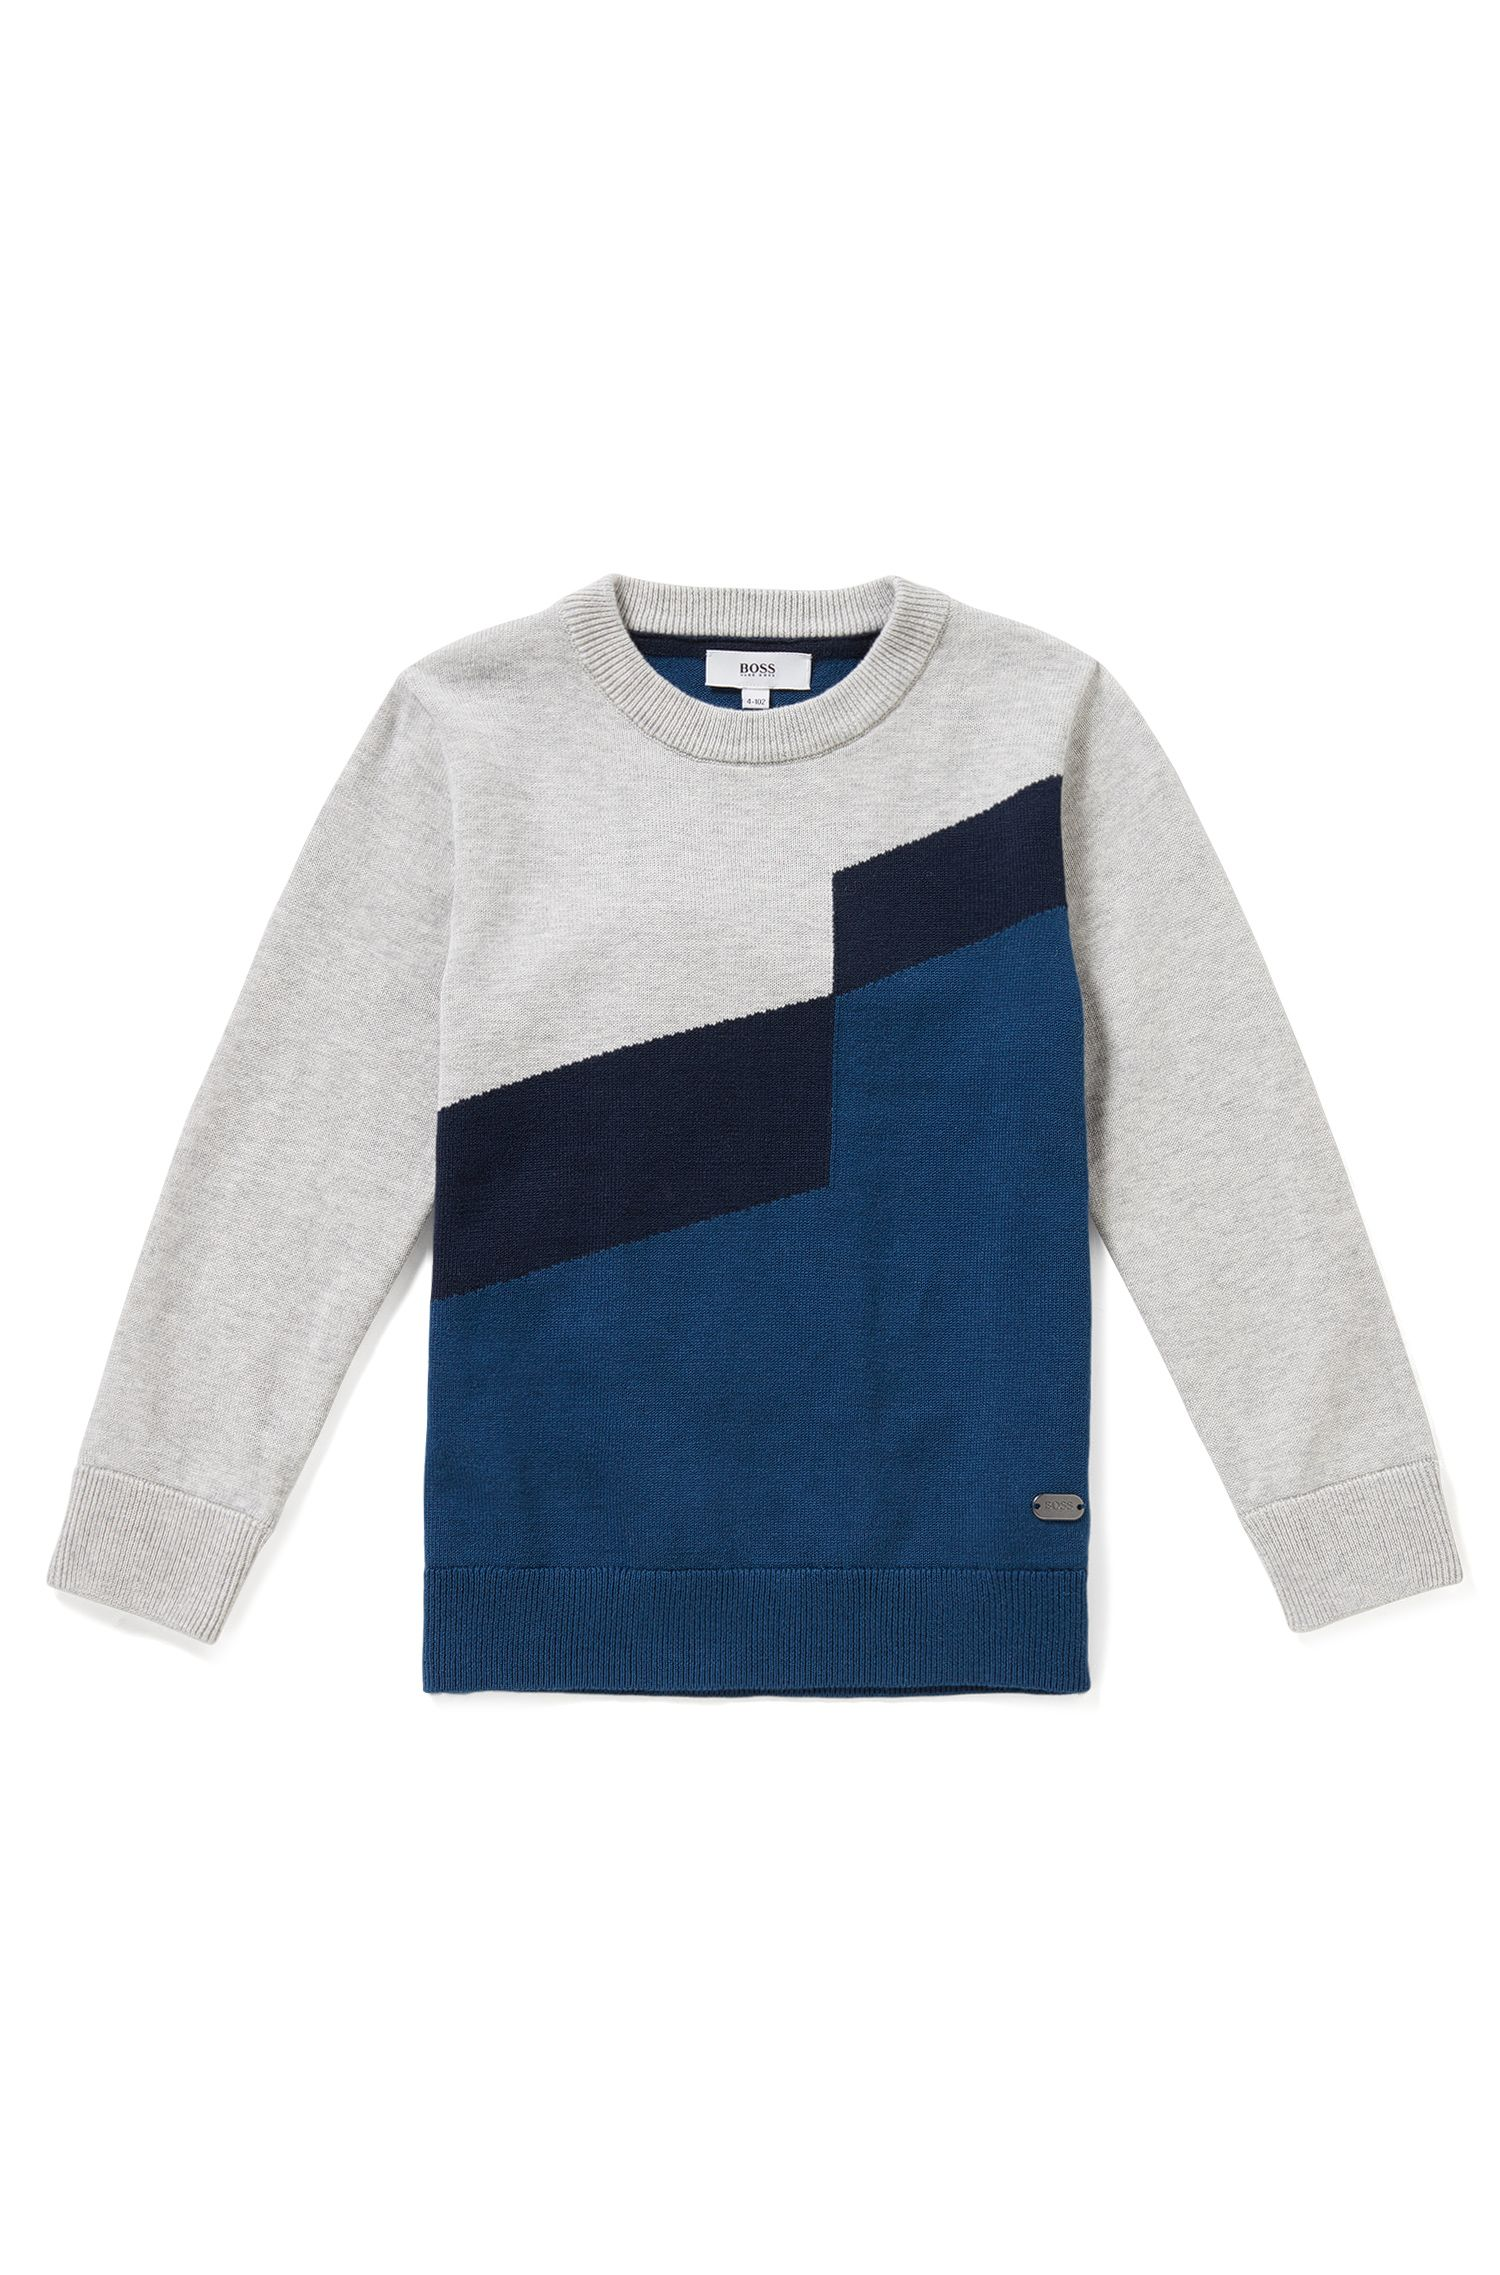 Regular-Fit Kids-Pullover aus Baumwoll-Mix mit Wolle im Colour-Block-Design